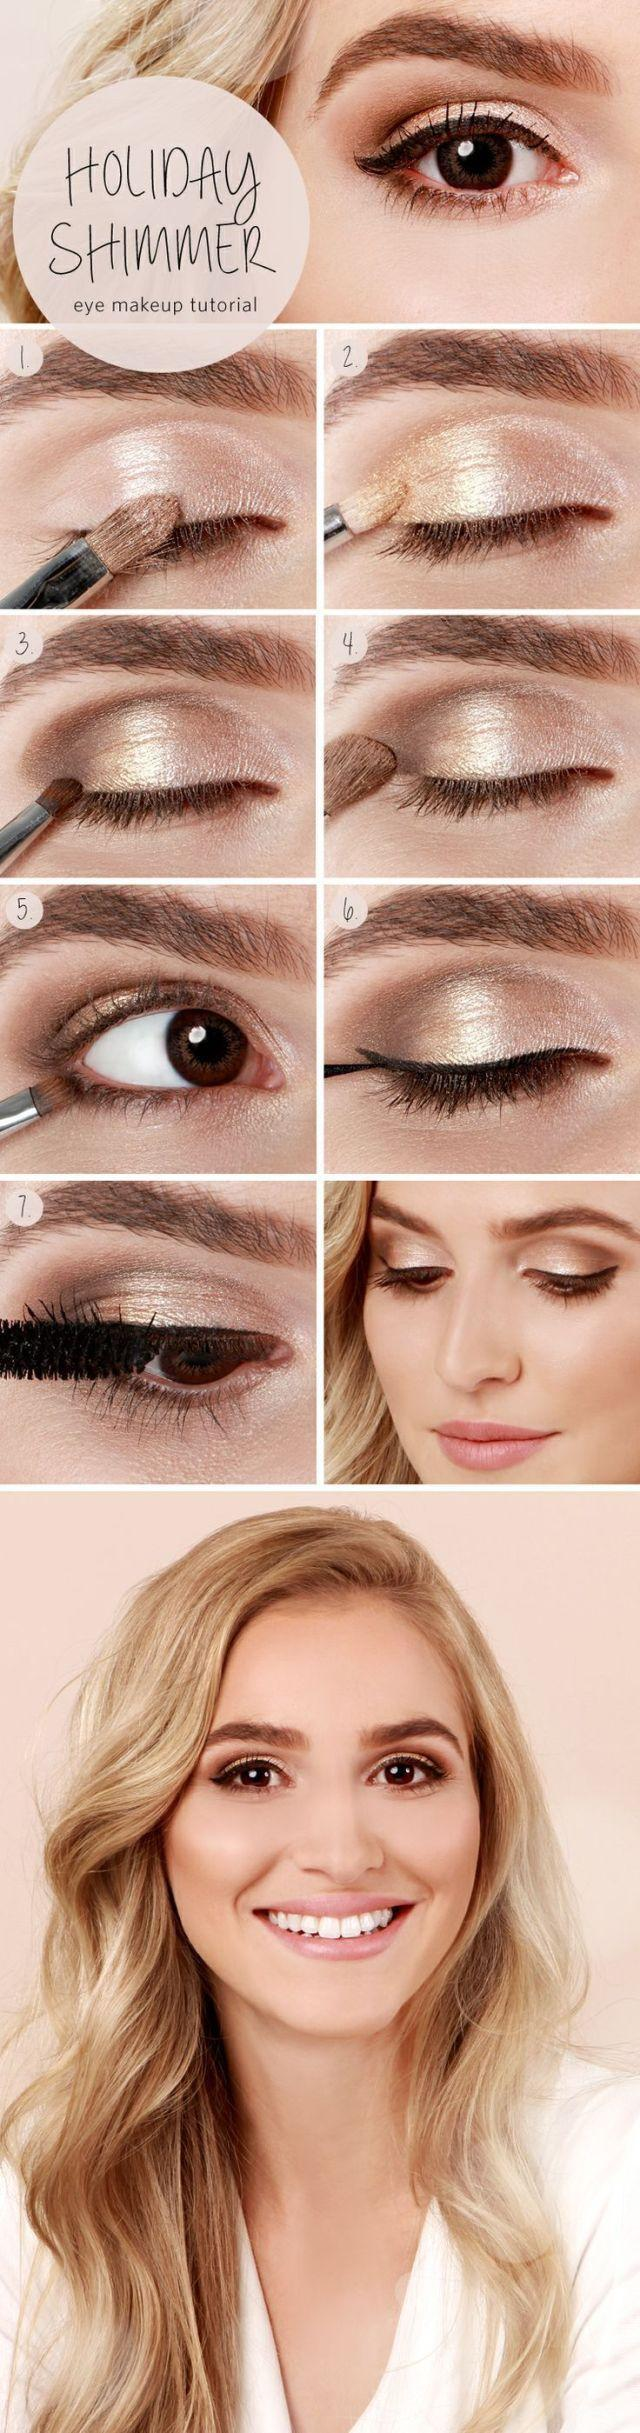 Wedding - 10 Eye Makeup Tutorials From Pinterest To Turn You Into A Beauty PRO